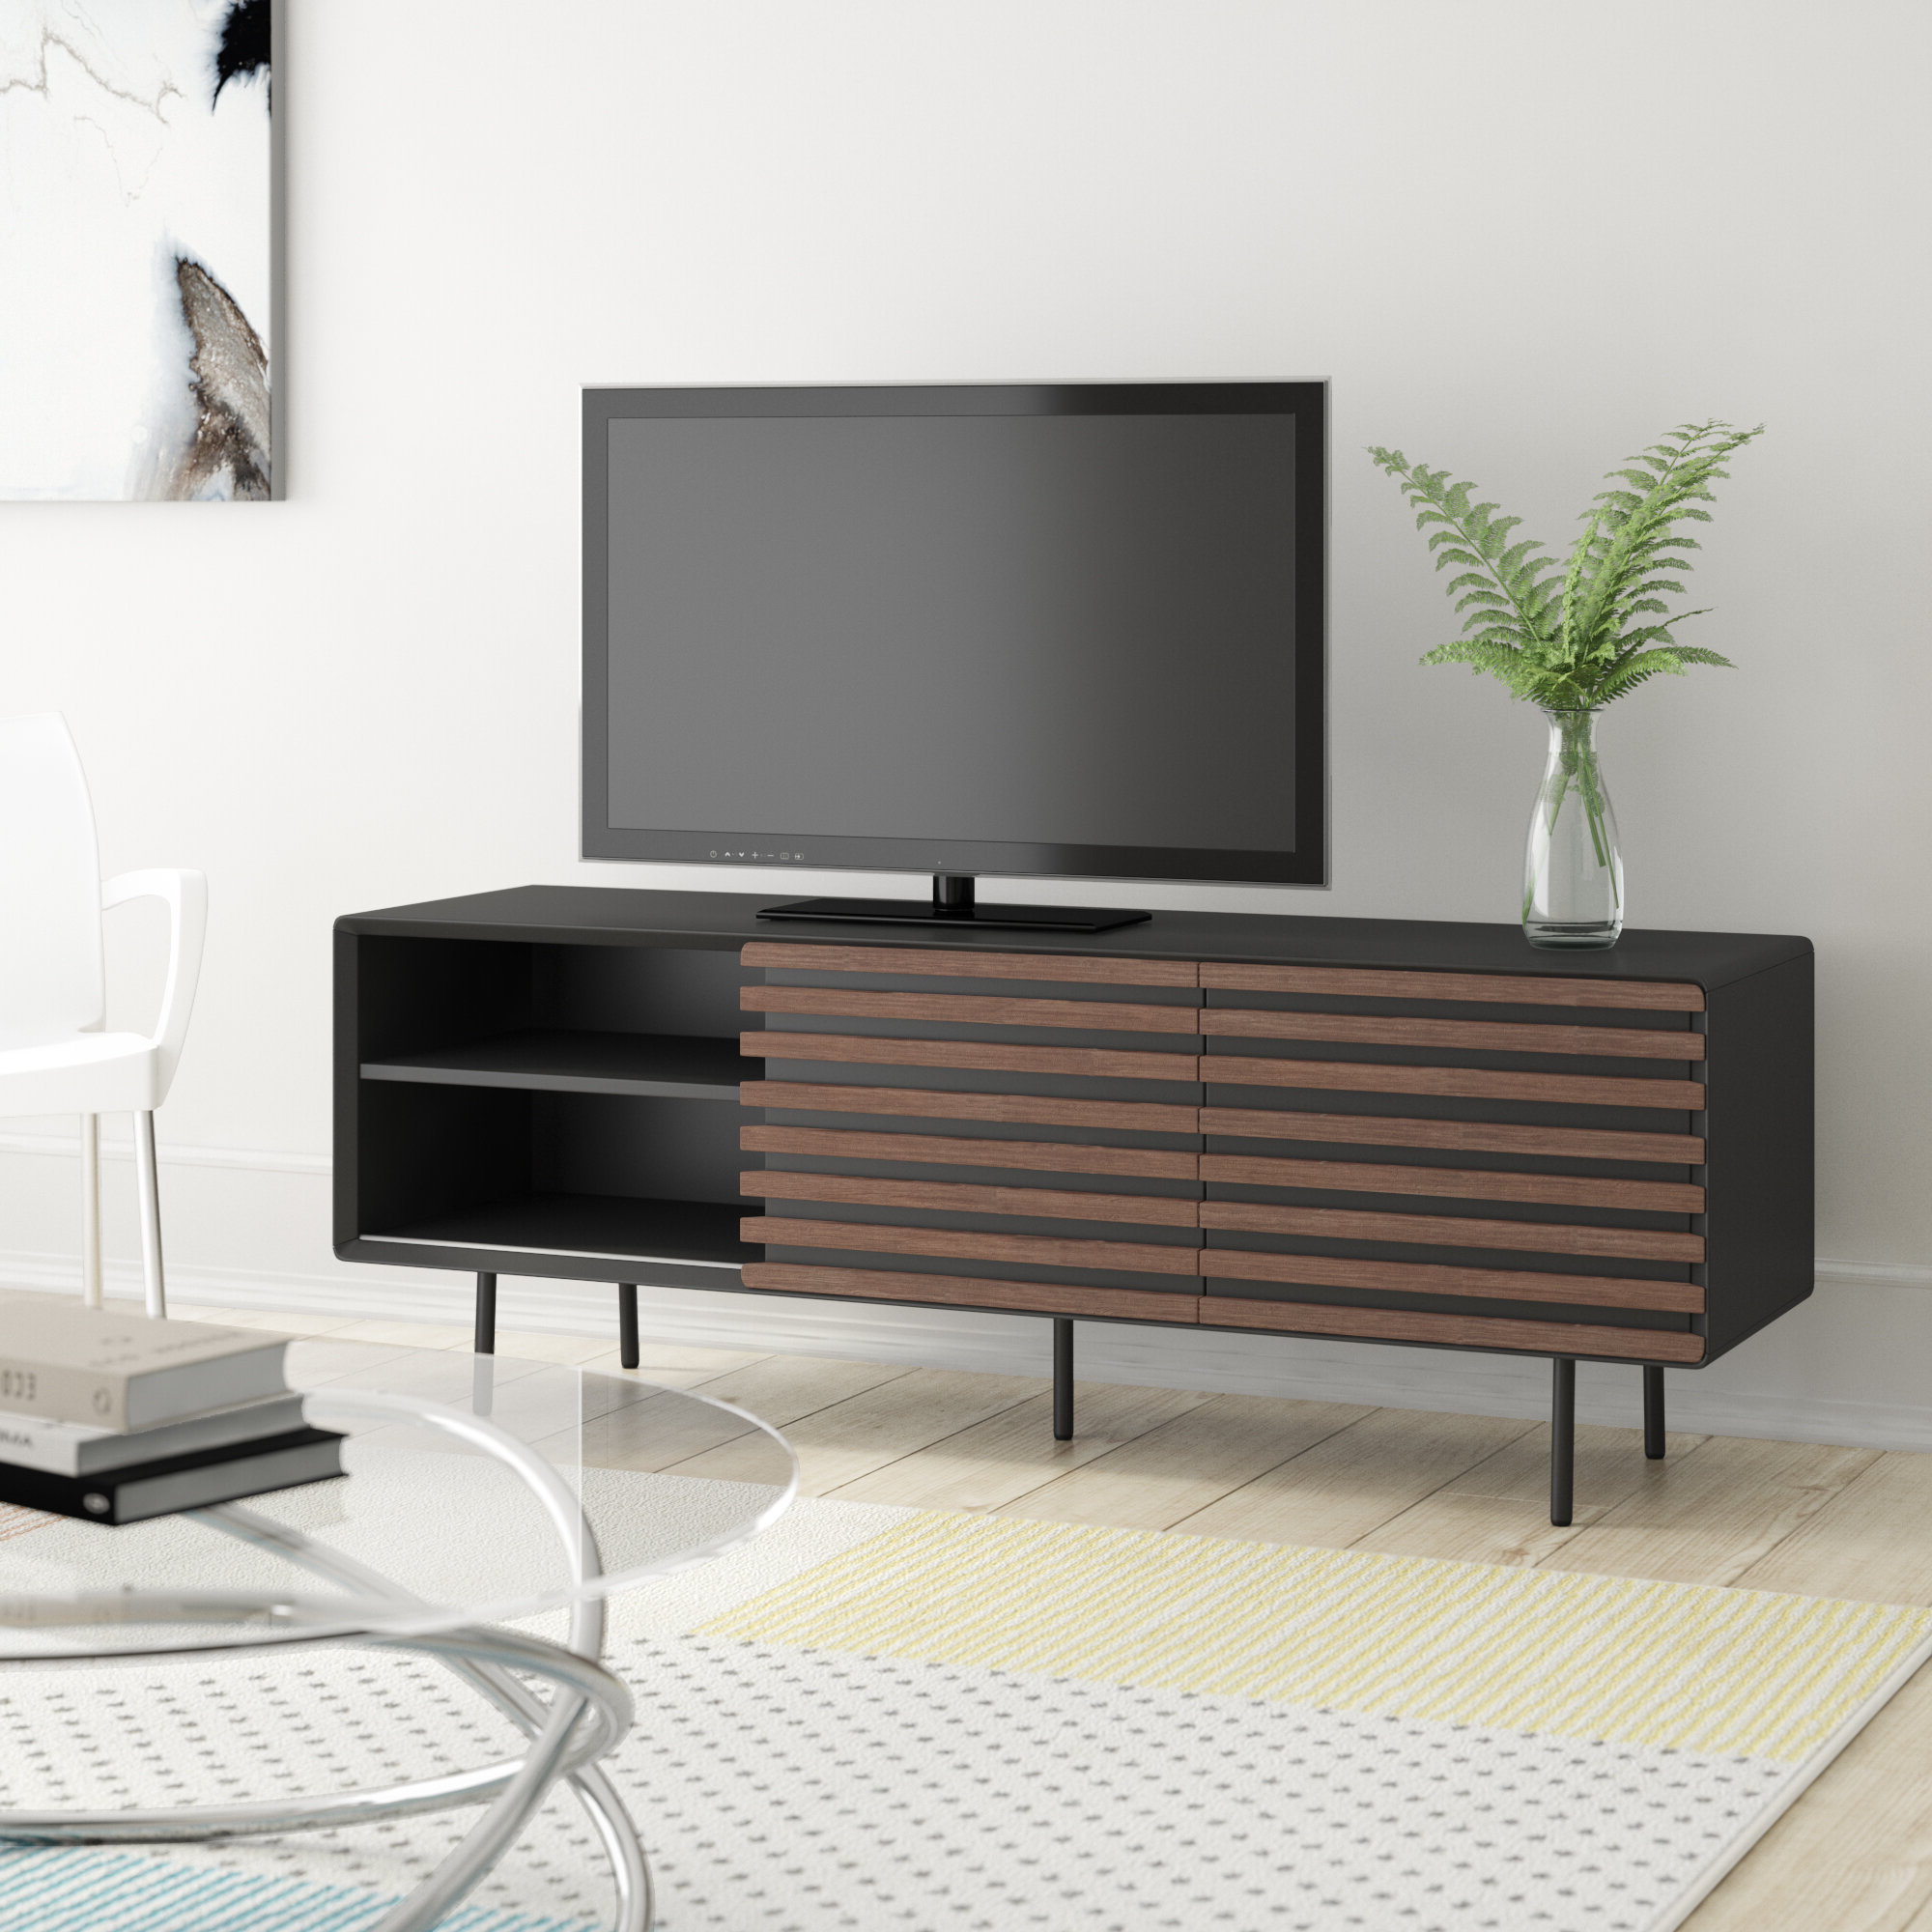 Rowan 45 Inch Tv Stands Inside Preferred Retro Tv Stands & Entertainment Units You'll Love (Gallery 19 of 20)